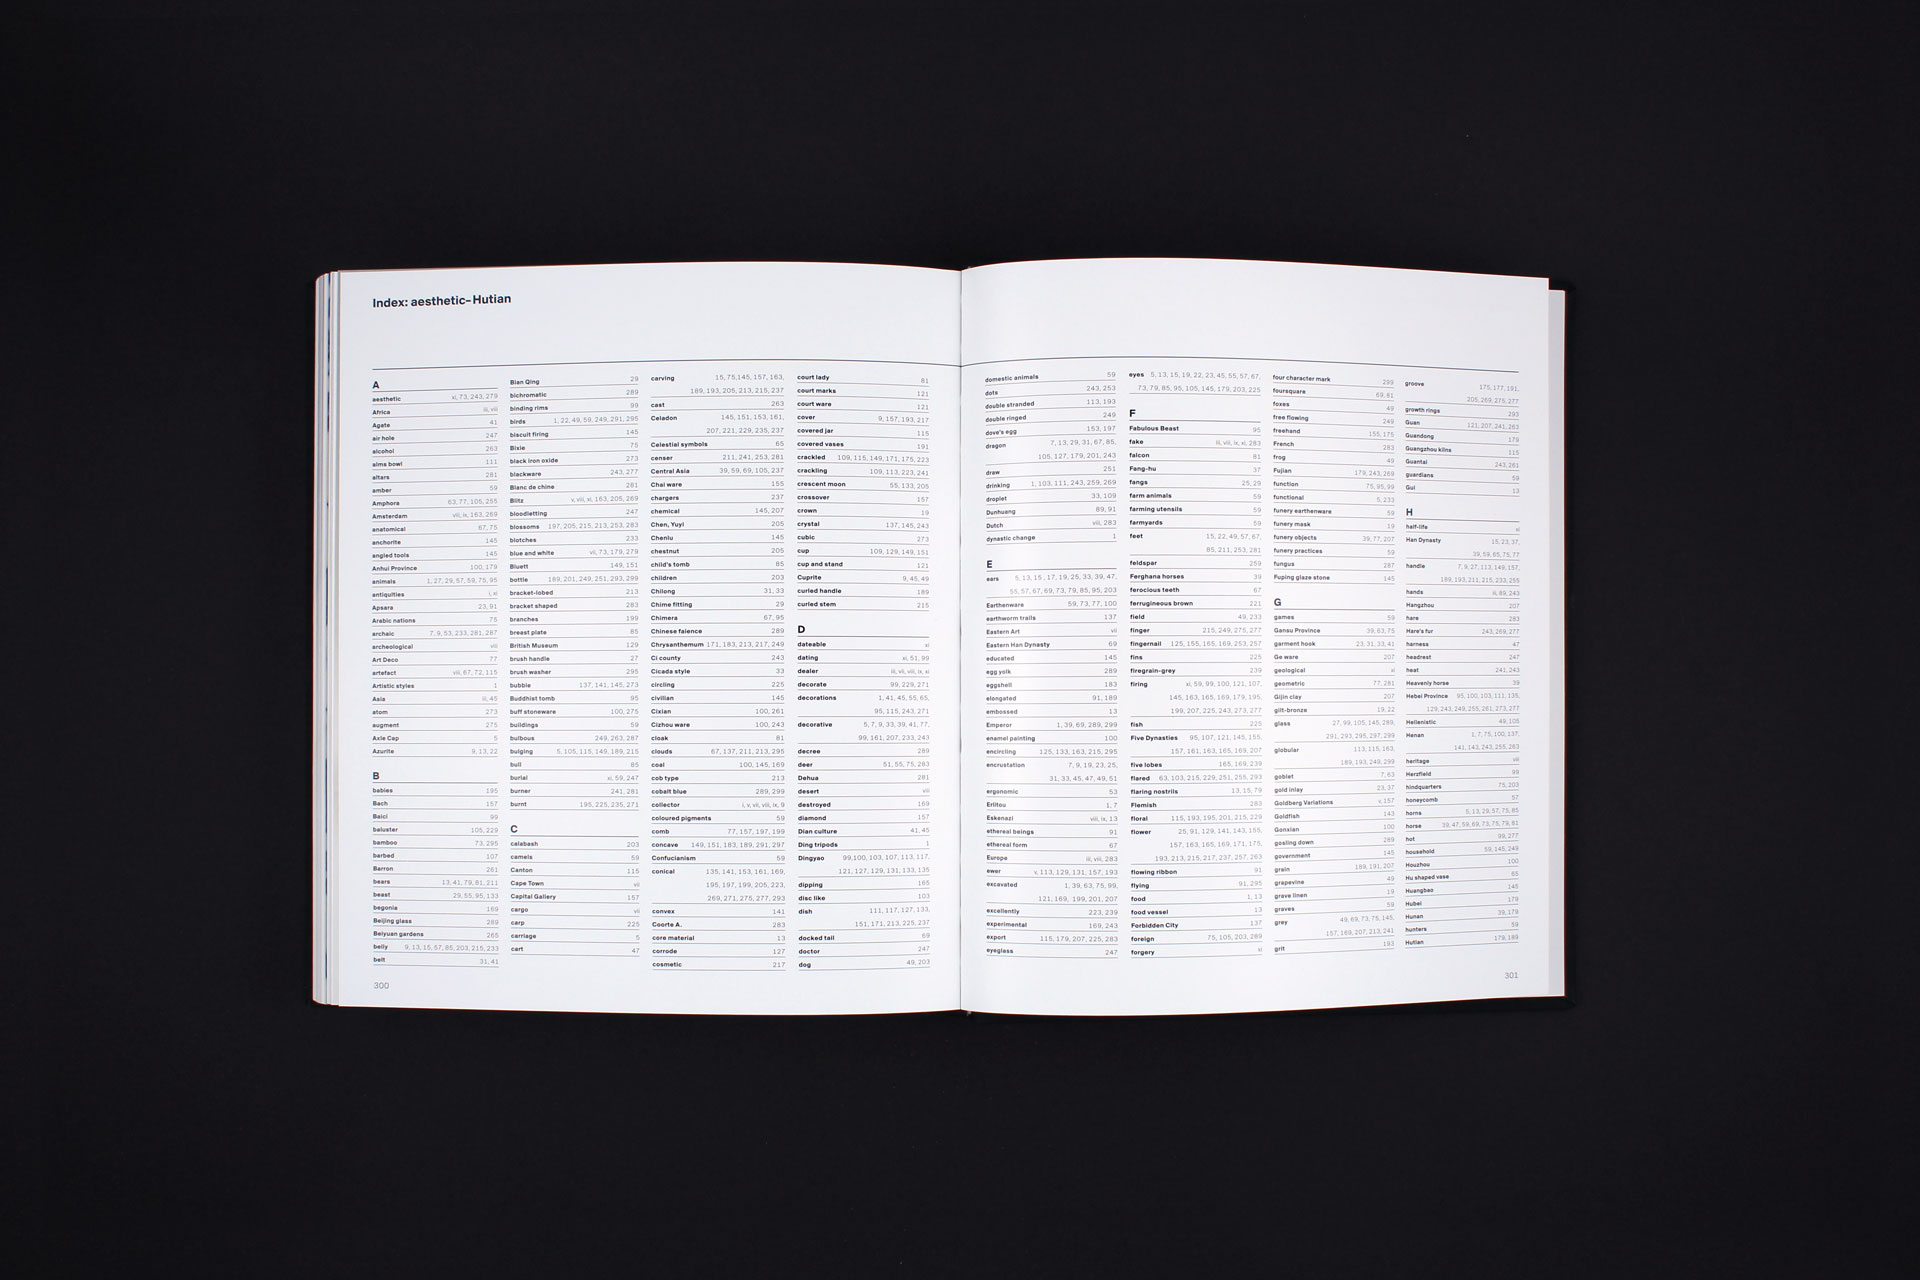 Youxiantang Collection book design index